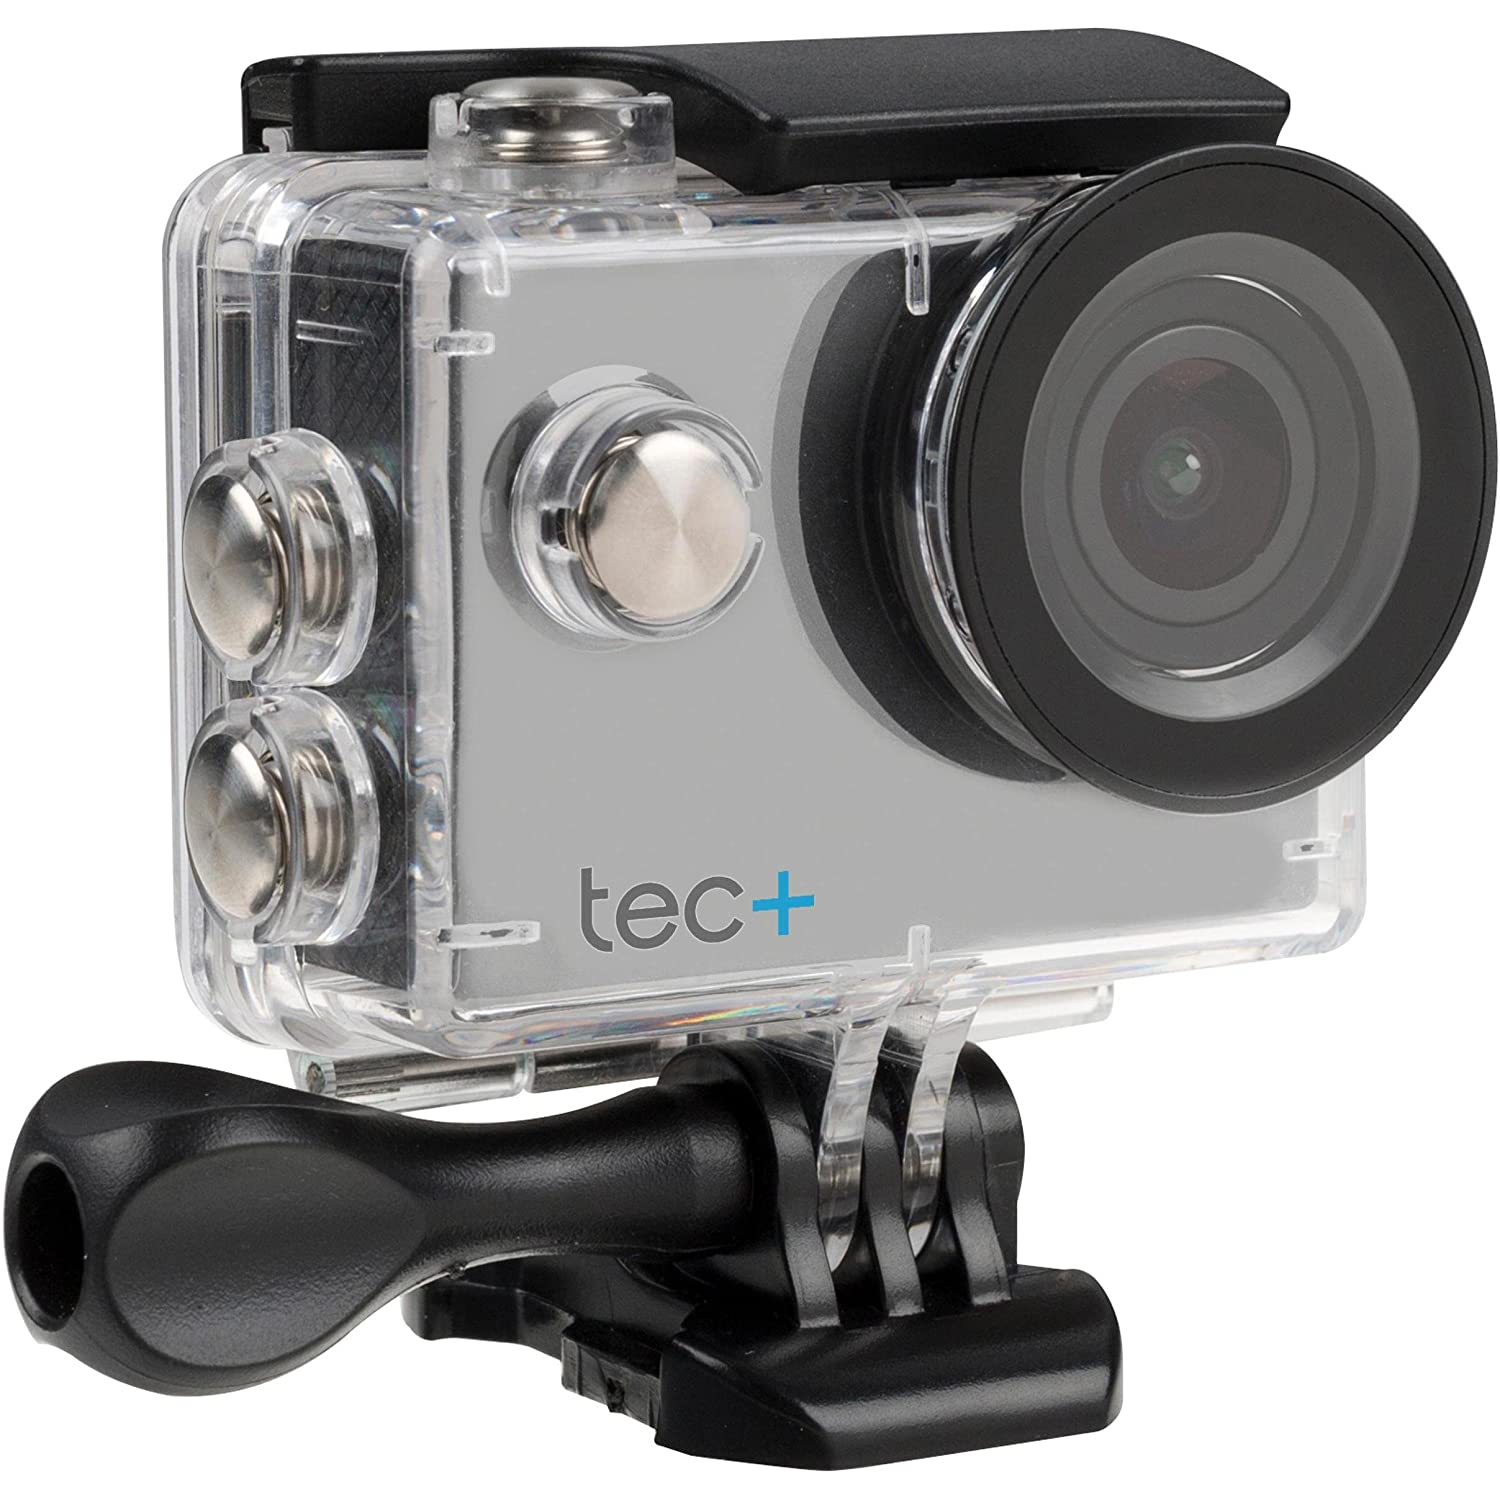 TecPlus 4K 12 MP Ultra Wide 170 Degree Lens Waterproof 30 m Helmet Camera Sports Action Camera with Mounting Accessories Kit for Cycling//Surfing//Climbing Silver